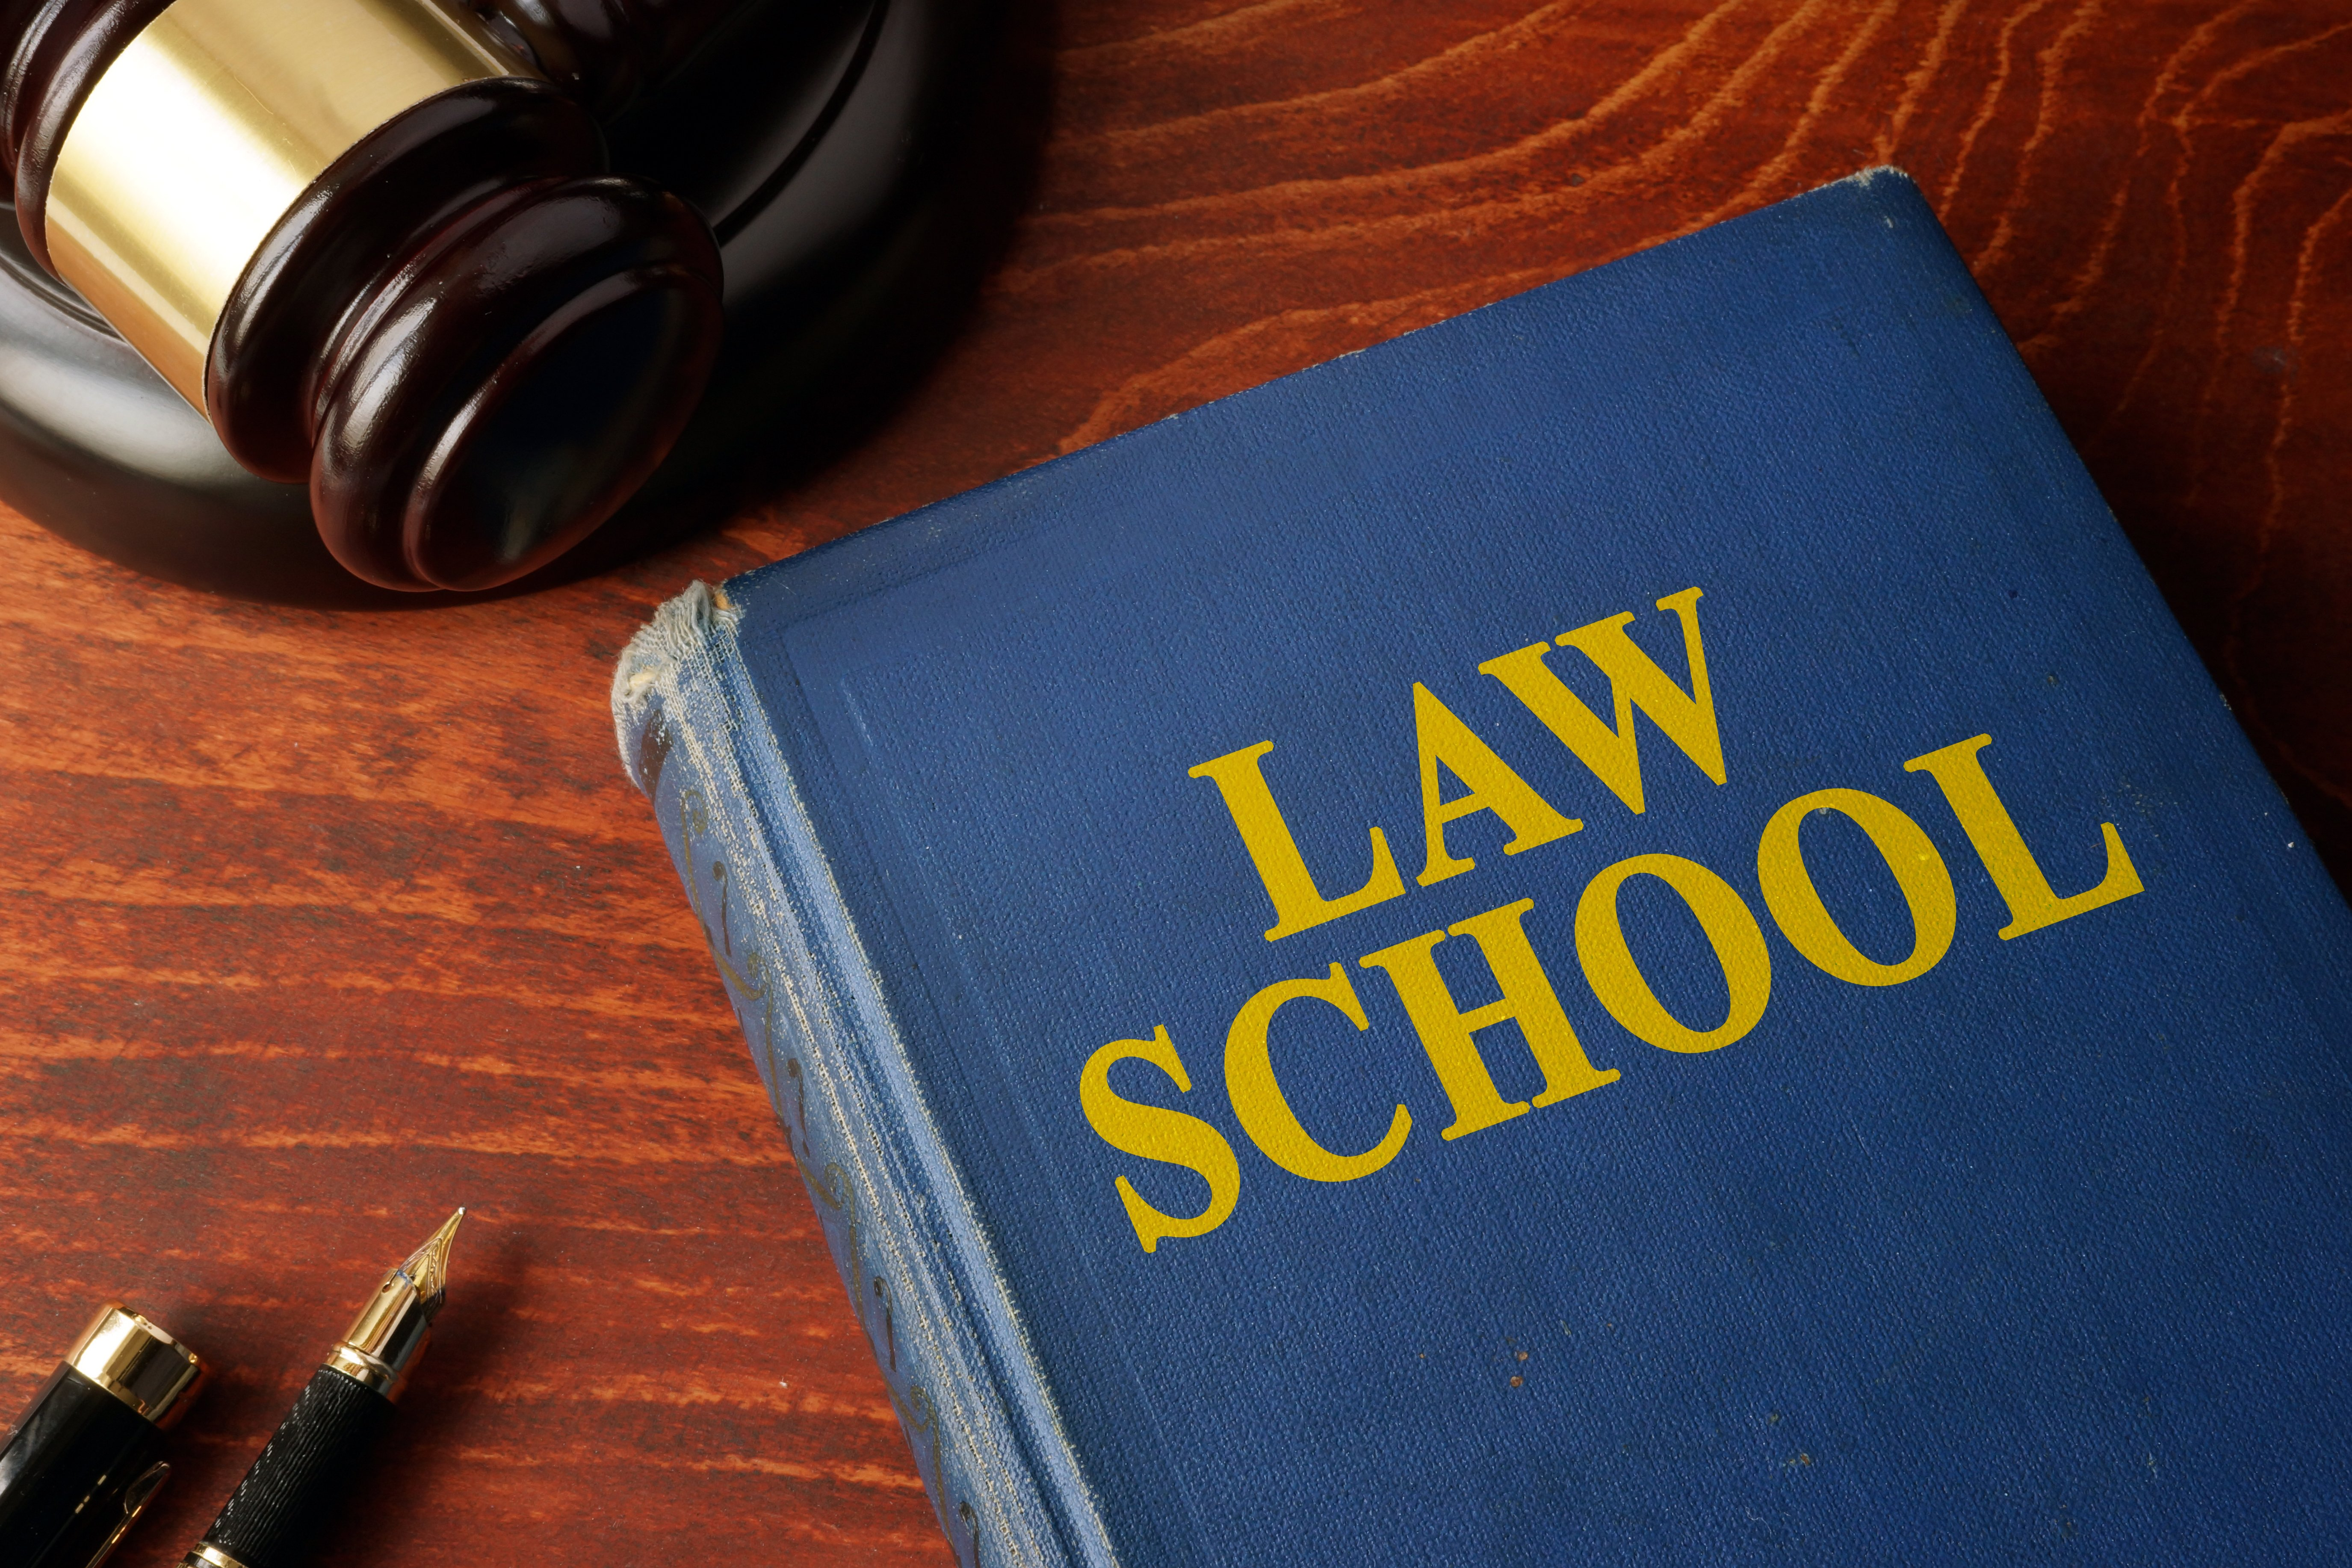 Welcome To Law School 1Ls: Try to Keep Your Wits About You